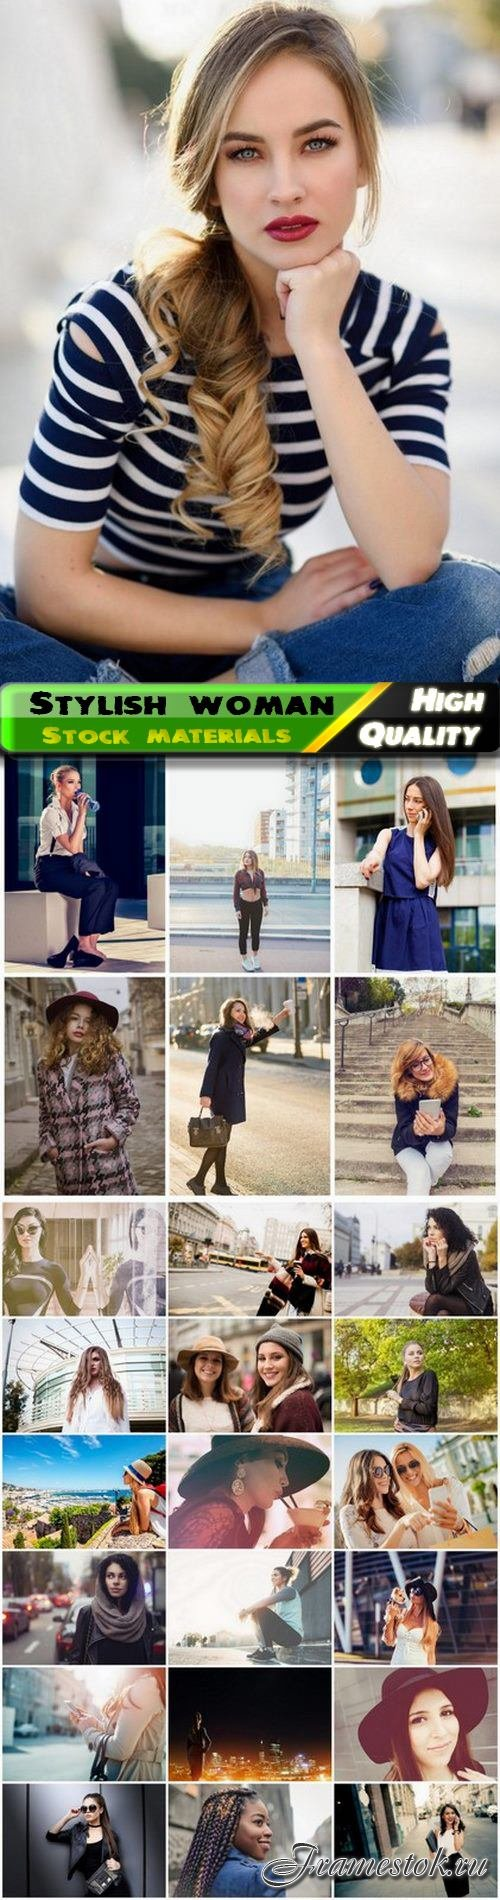 Stylish woman and urban fashion style girl in city 25 HQ Jpg